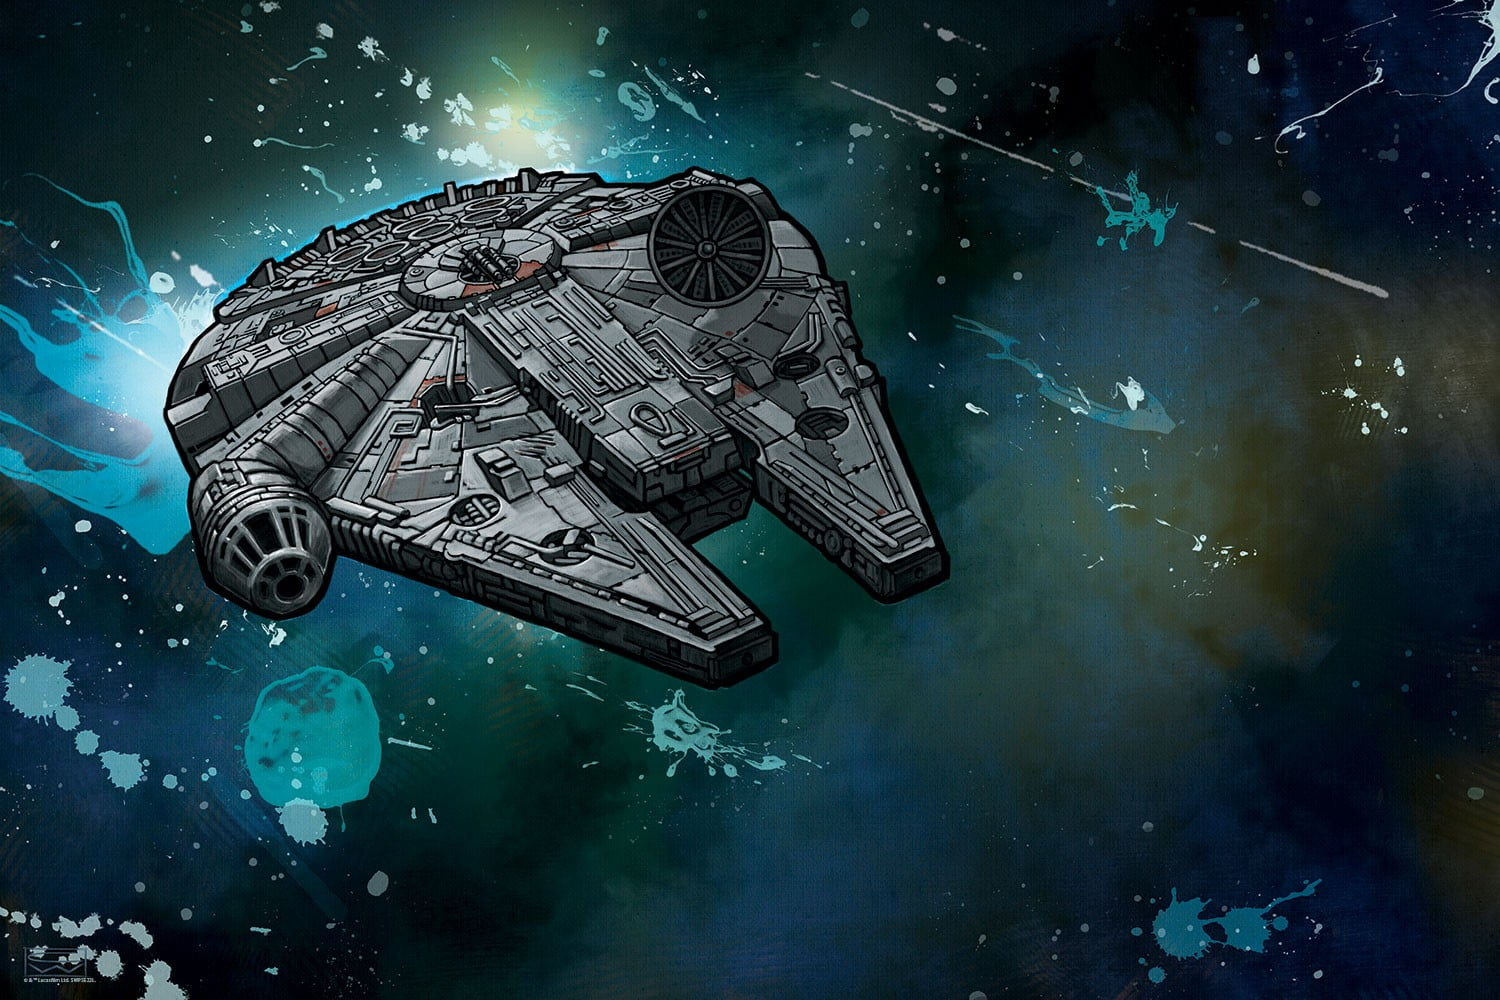 Millennium Falcon Wallpaper Posted By Ryan Sellers